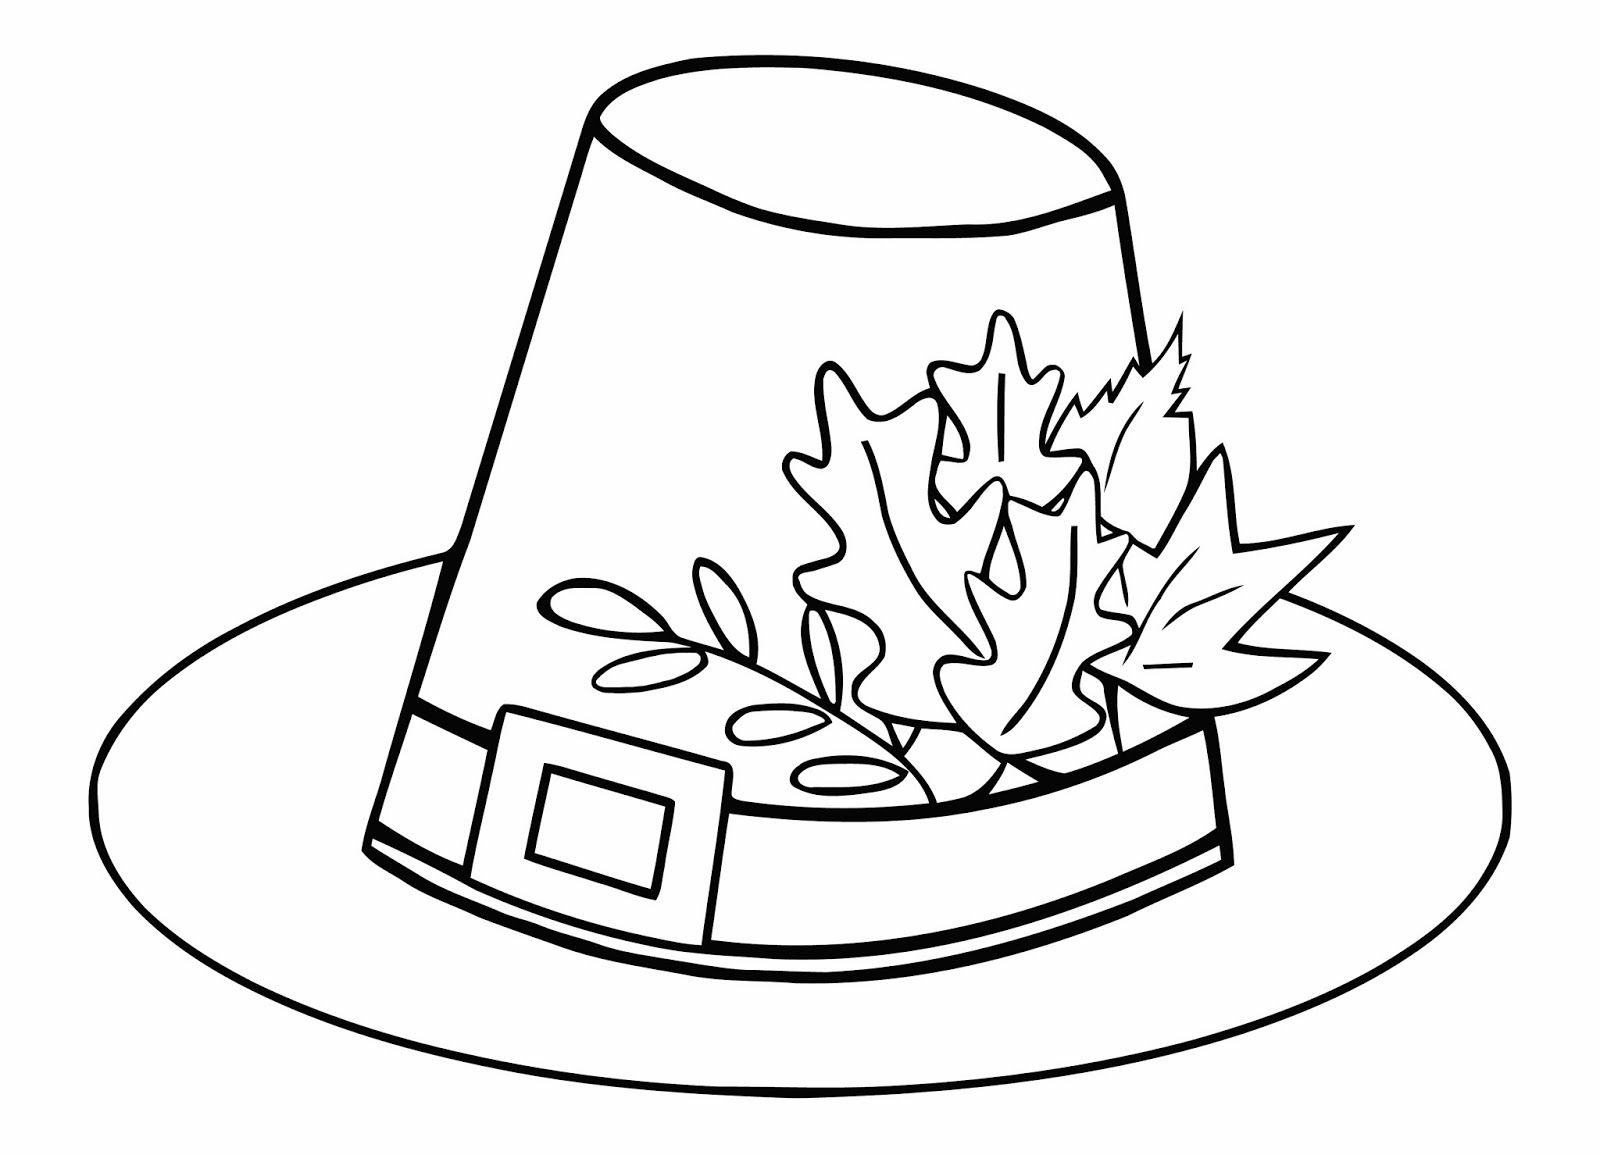 Pa pages to color for children - Coloring Pages For Children Is A Wonderful Activity That Encourages Children To Think In A Creative Way And Arises Their Curiosity